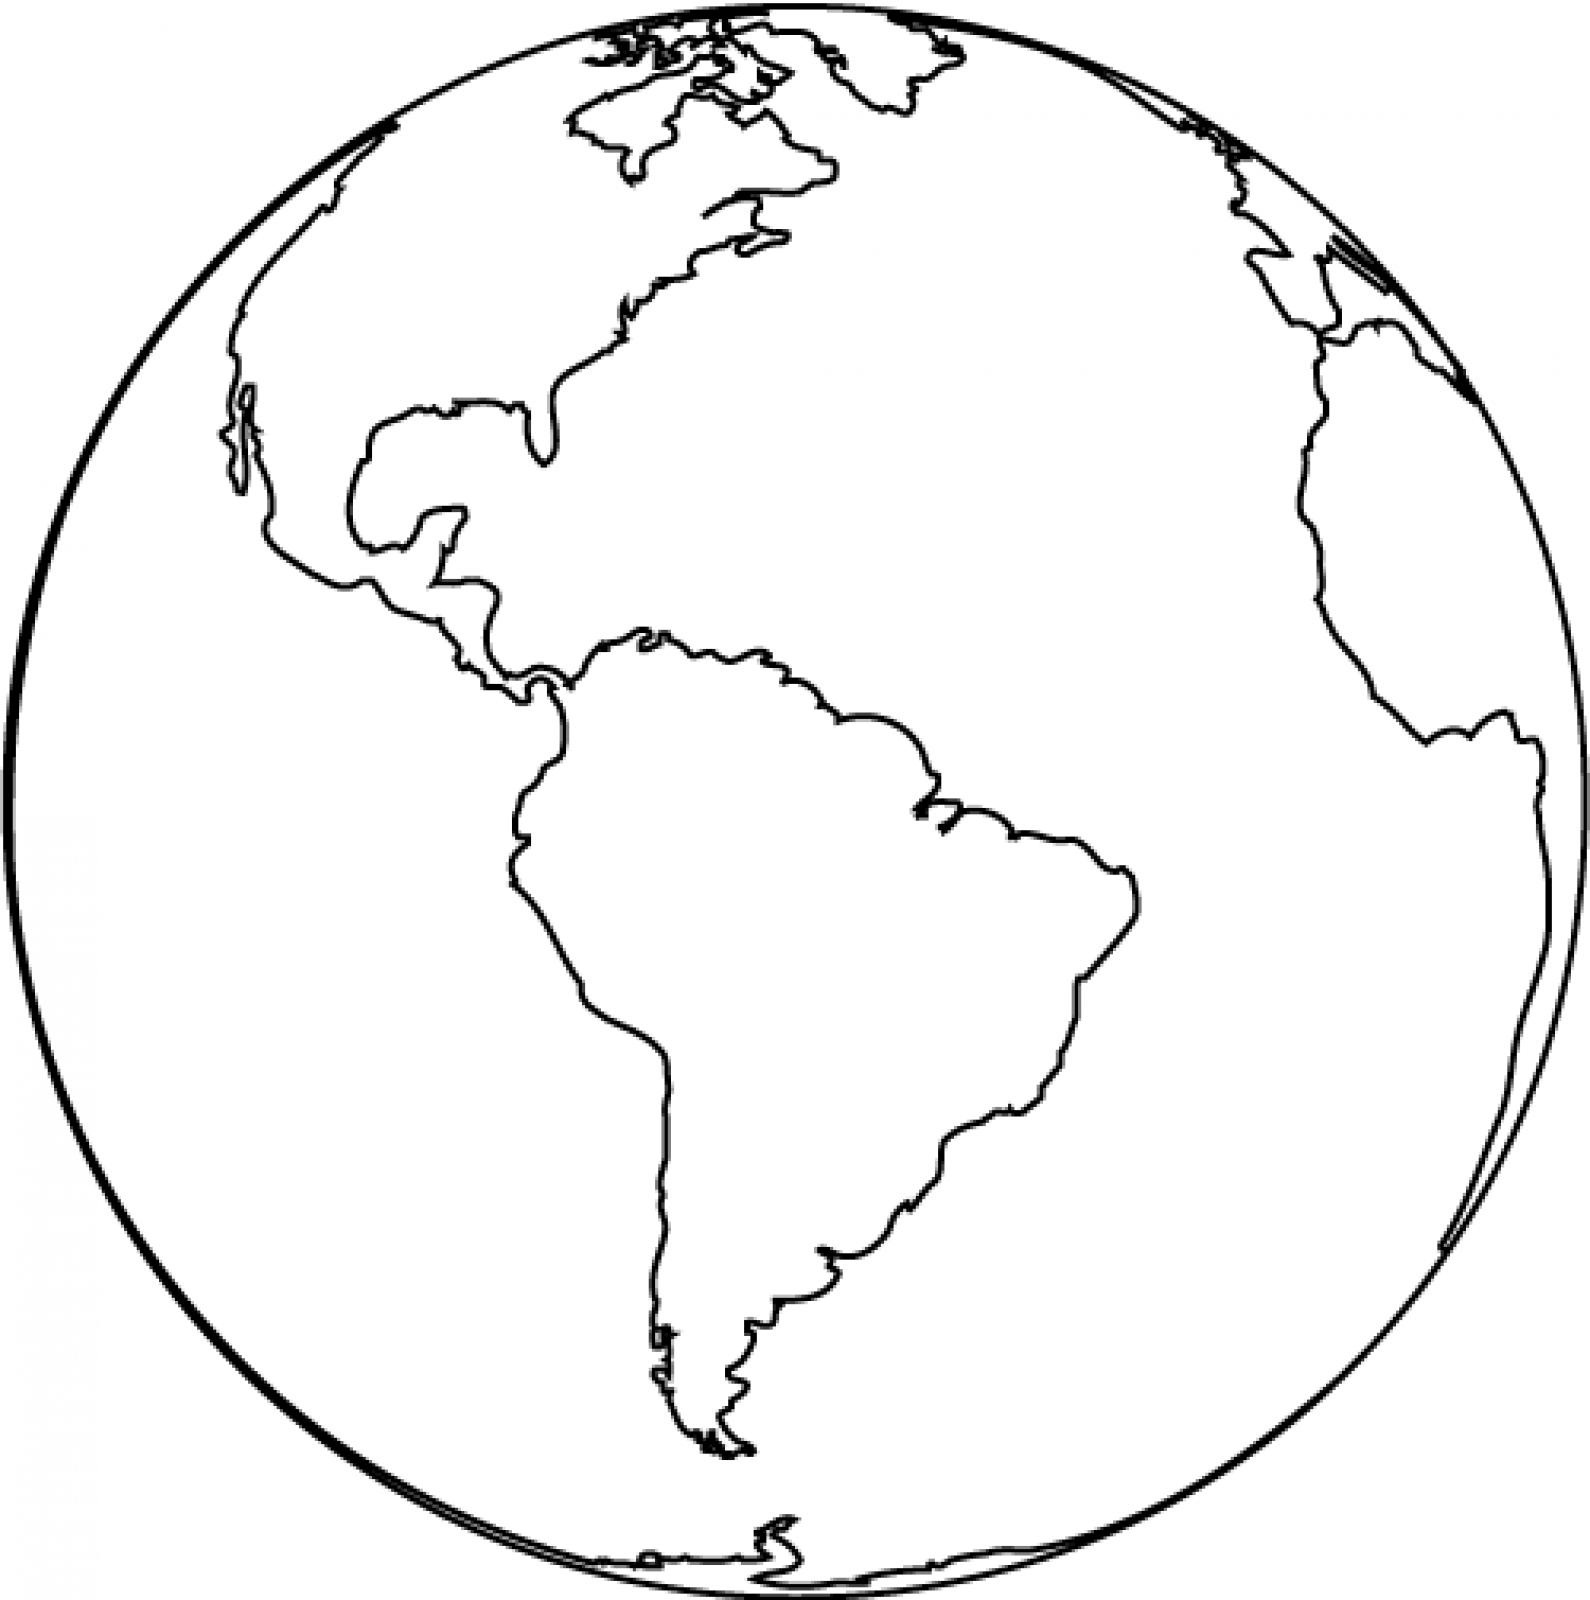 earth coloring sheet earth day coloring pages preschool and kindergarten coloring sheet earth